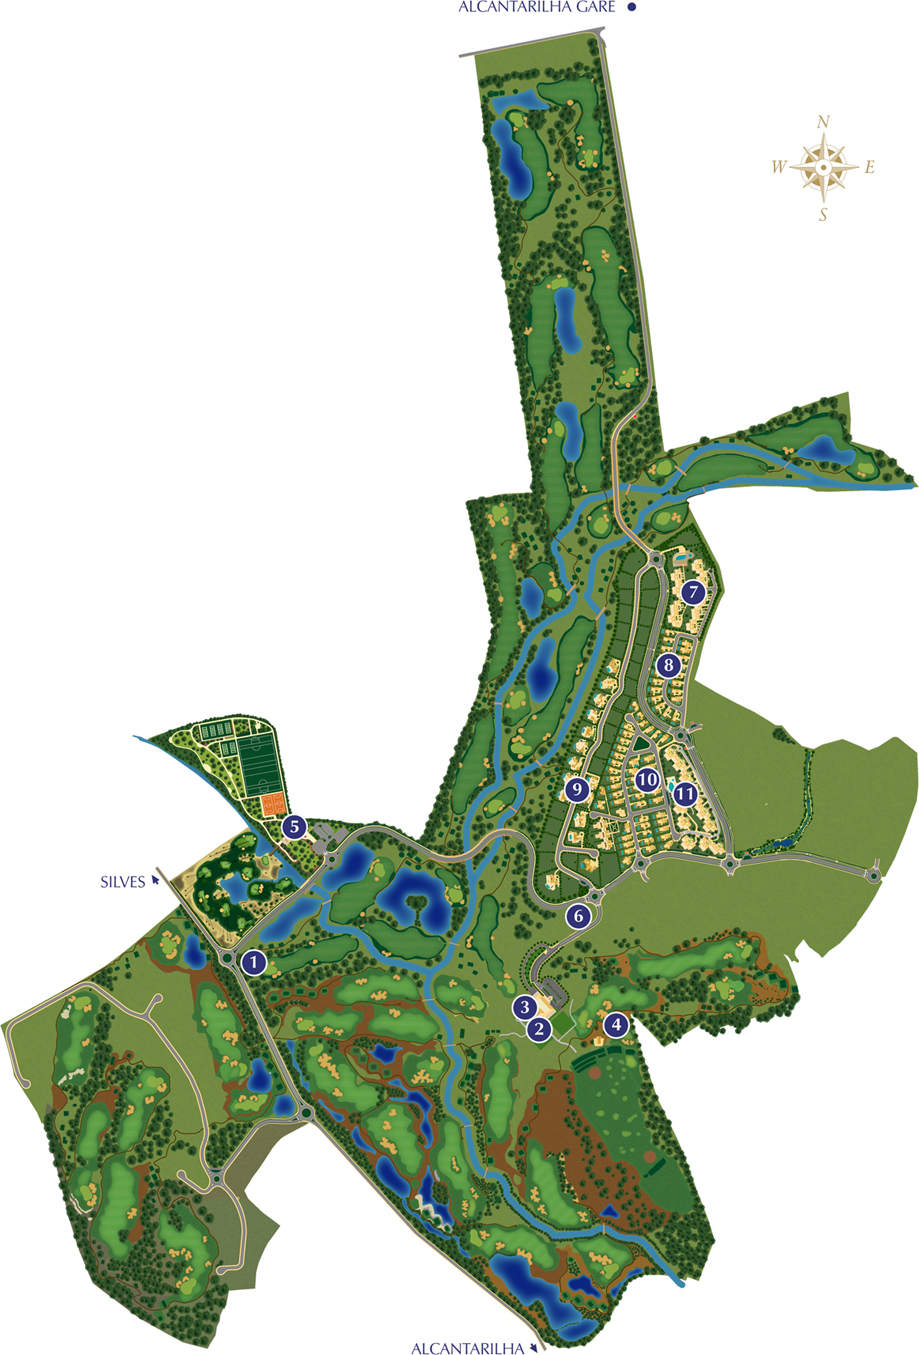 Amendoeira Golf Resort - Resort map